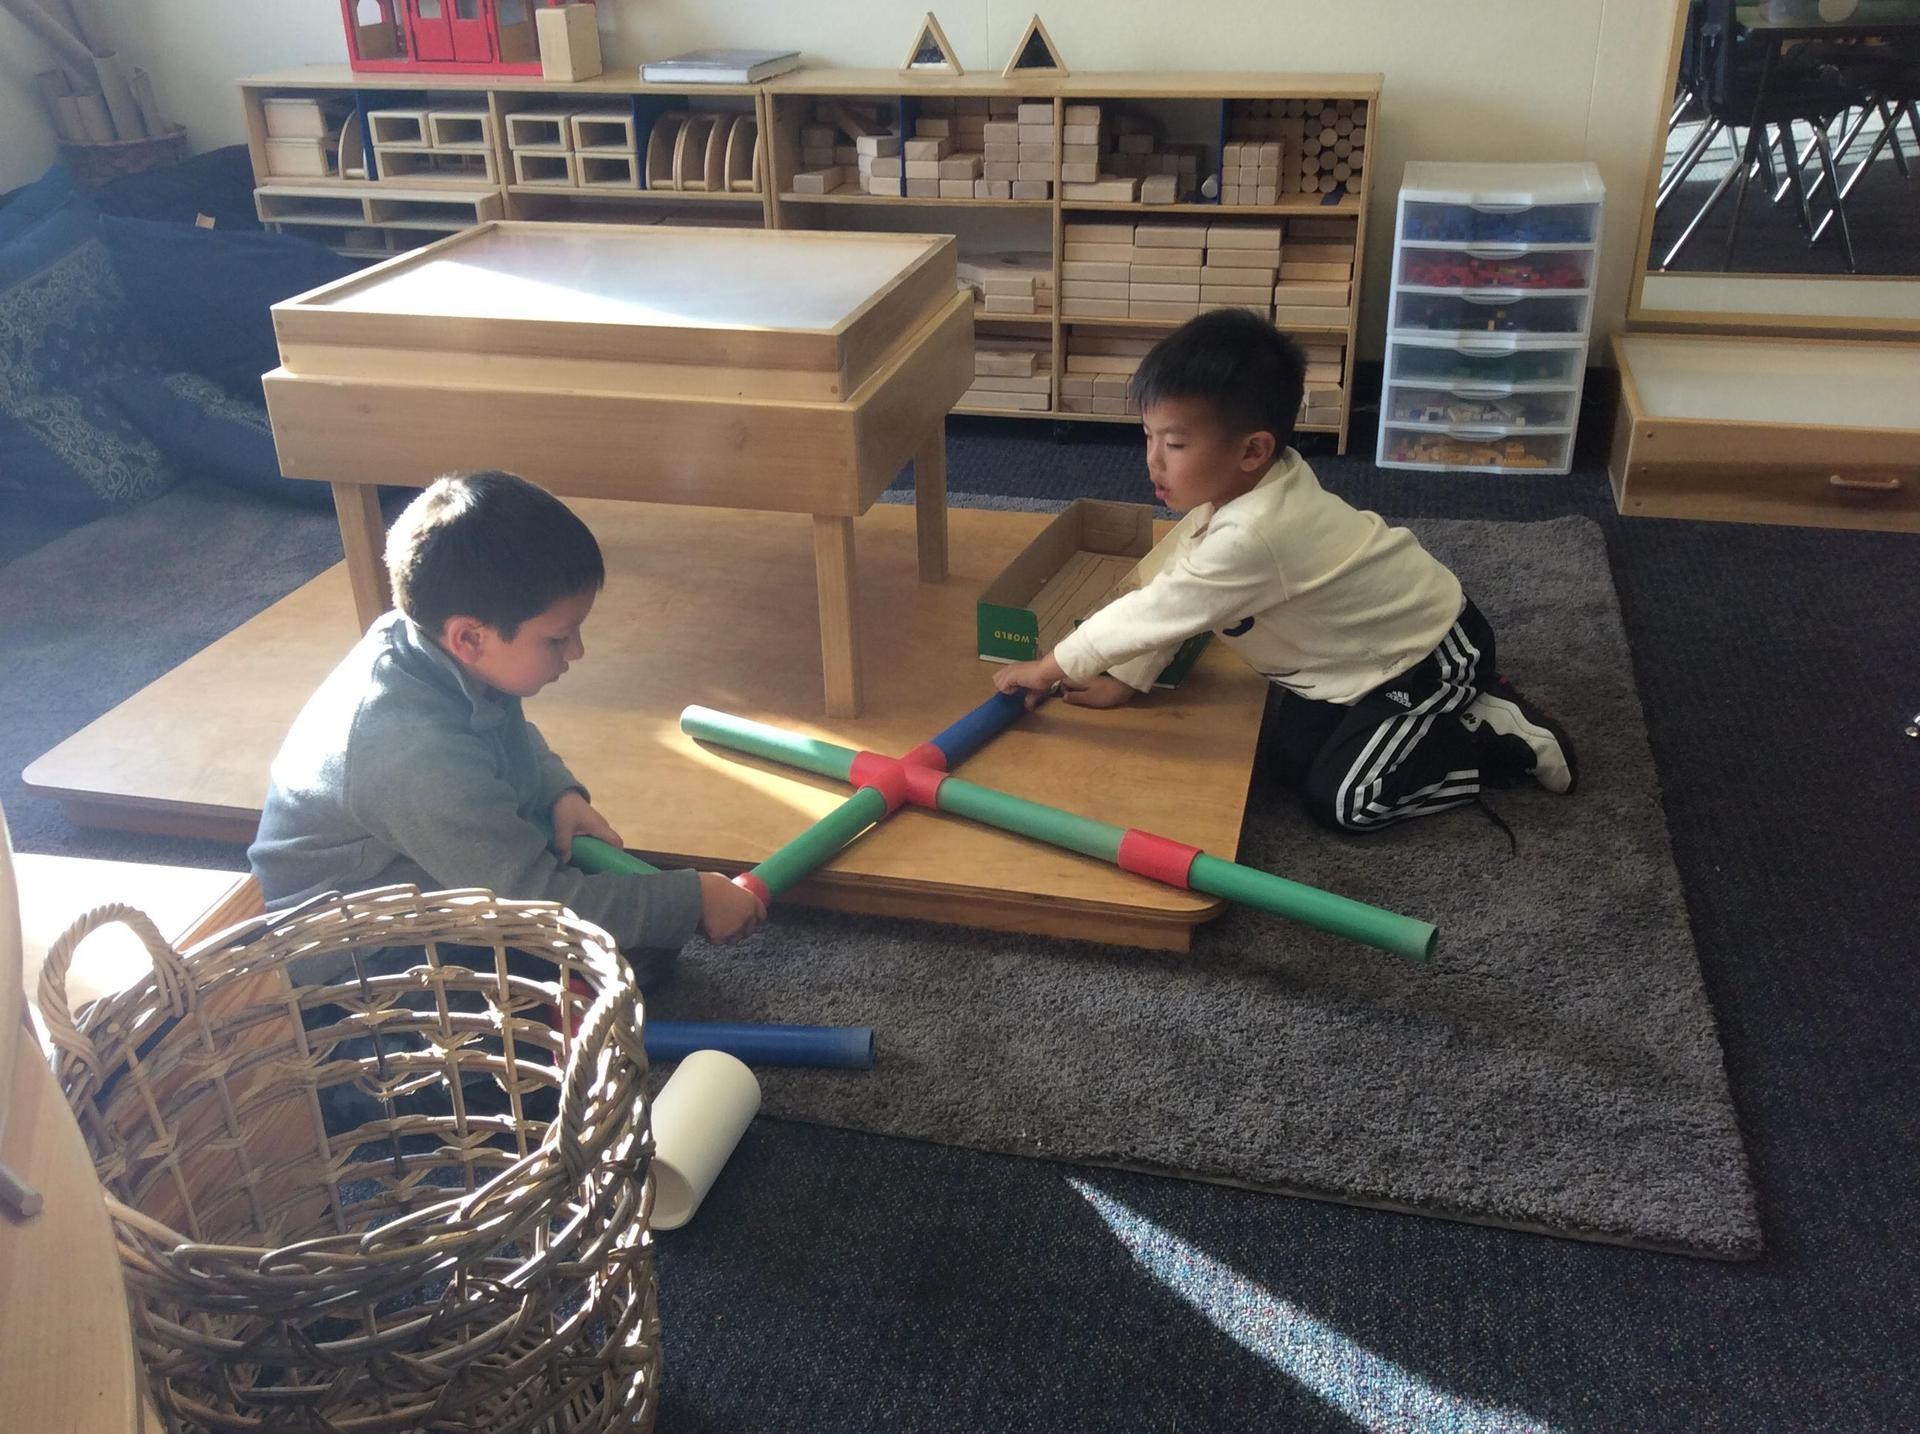 Children playing collaboratively on a platform in the block area of the classroom.